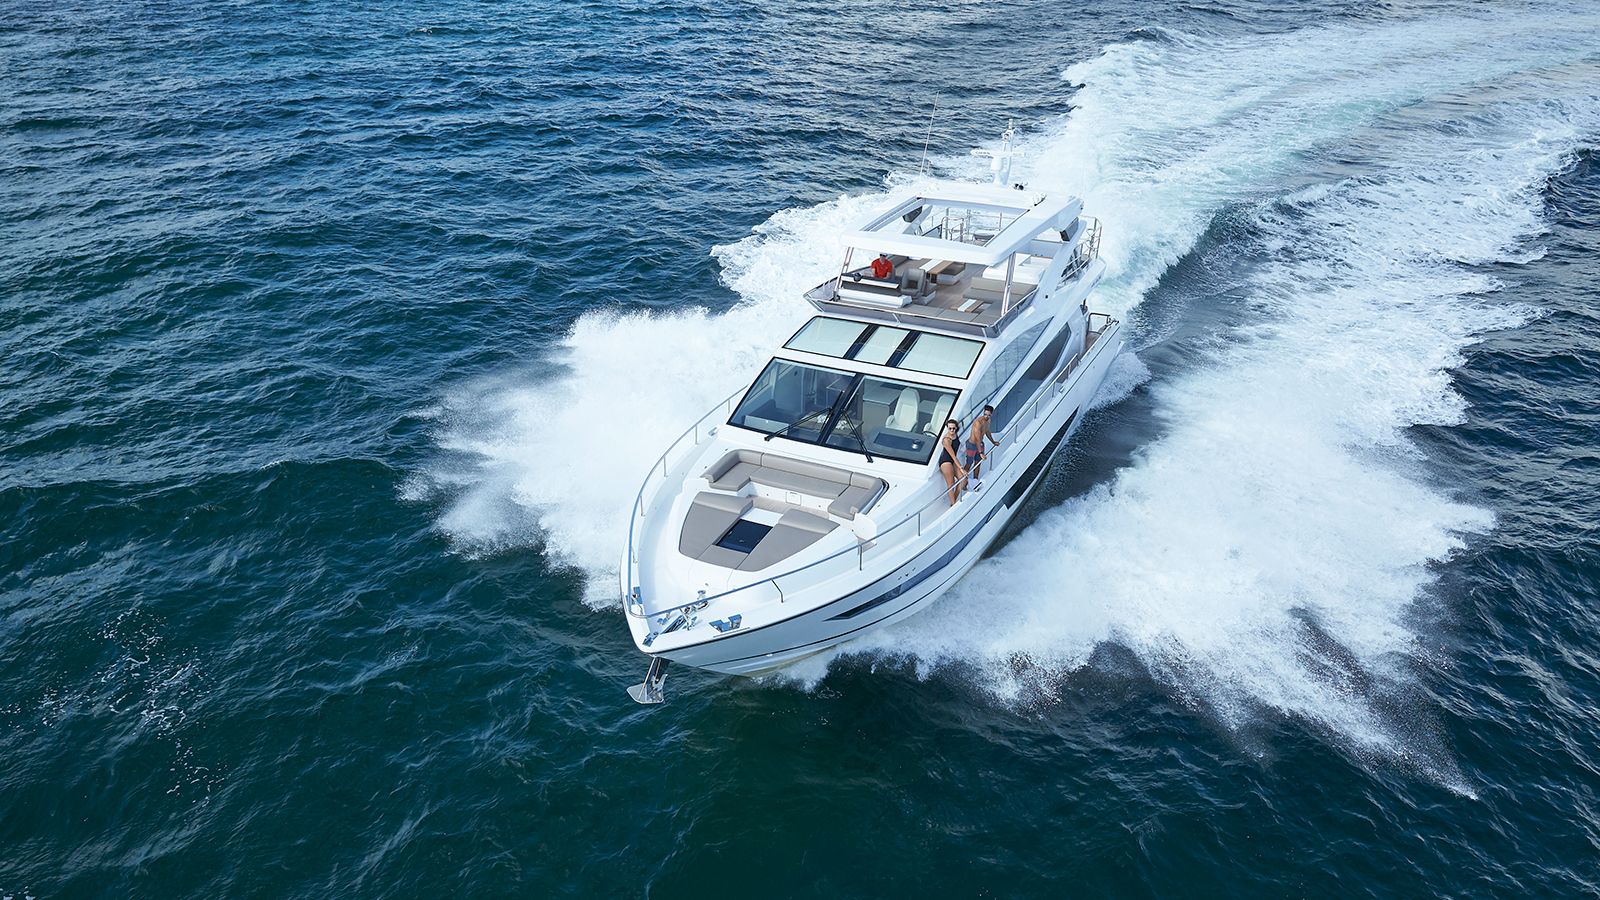 running-shot-of-the-pearl-80-yacht